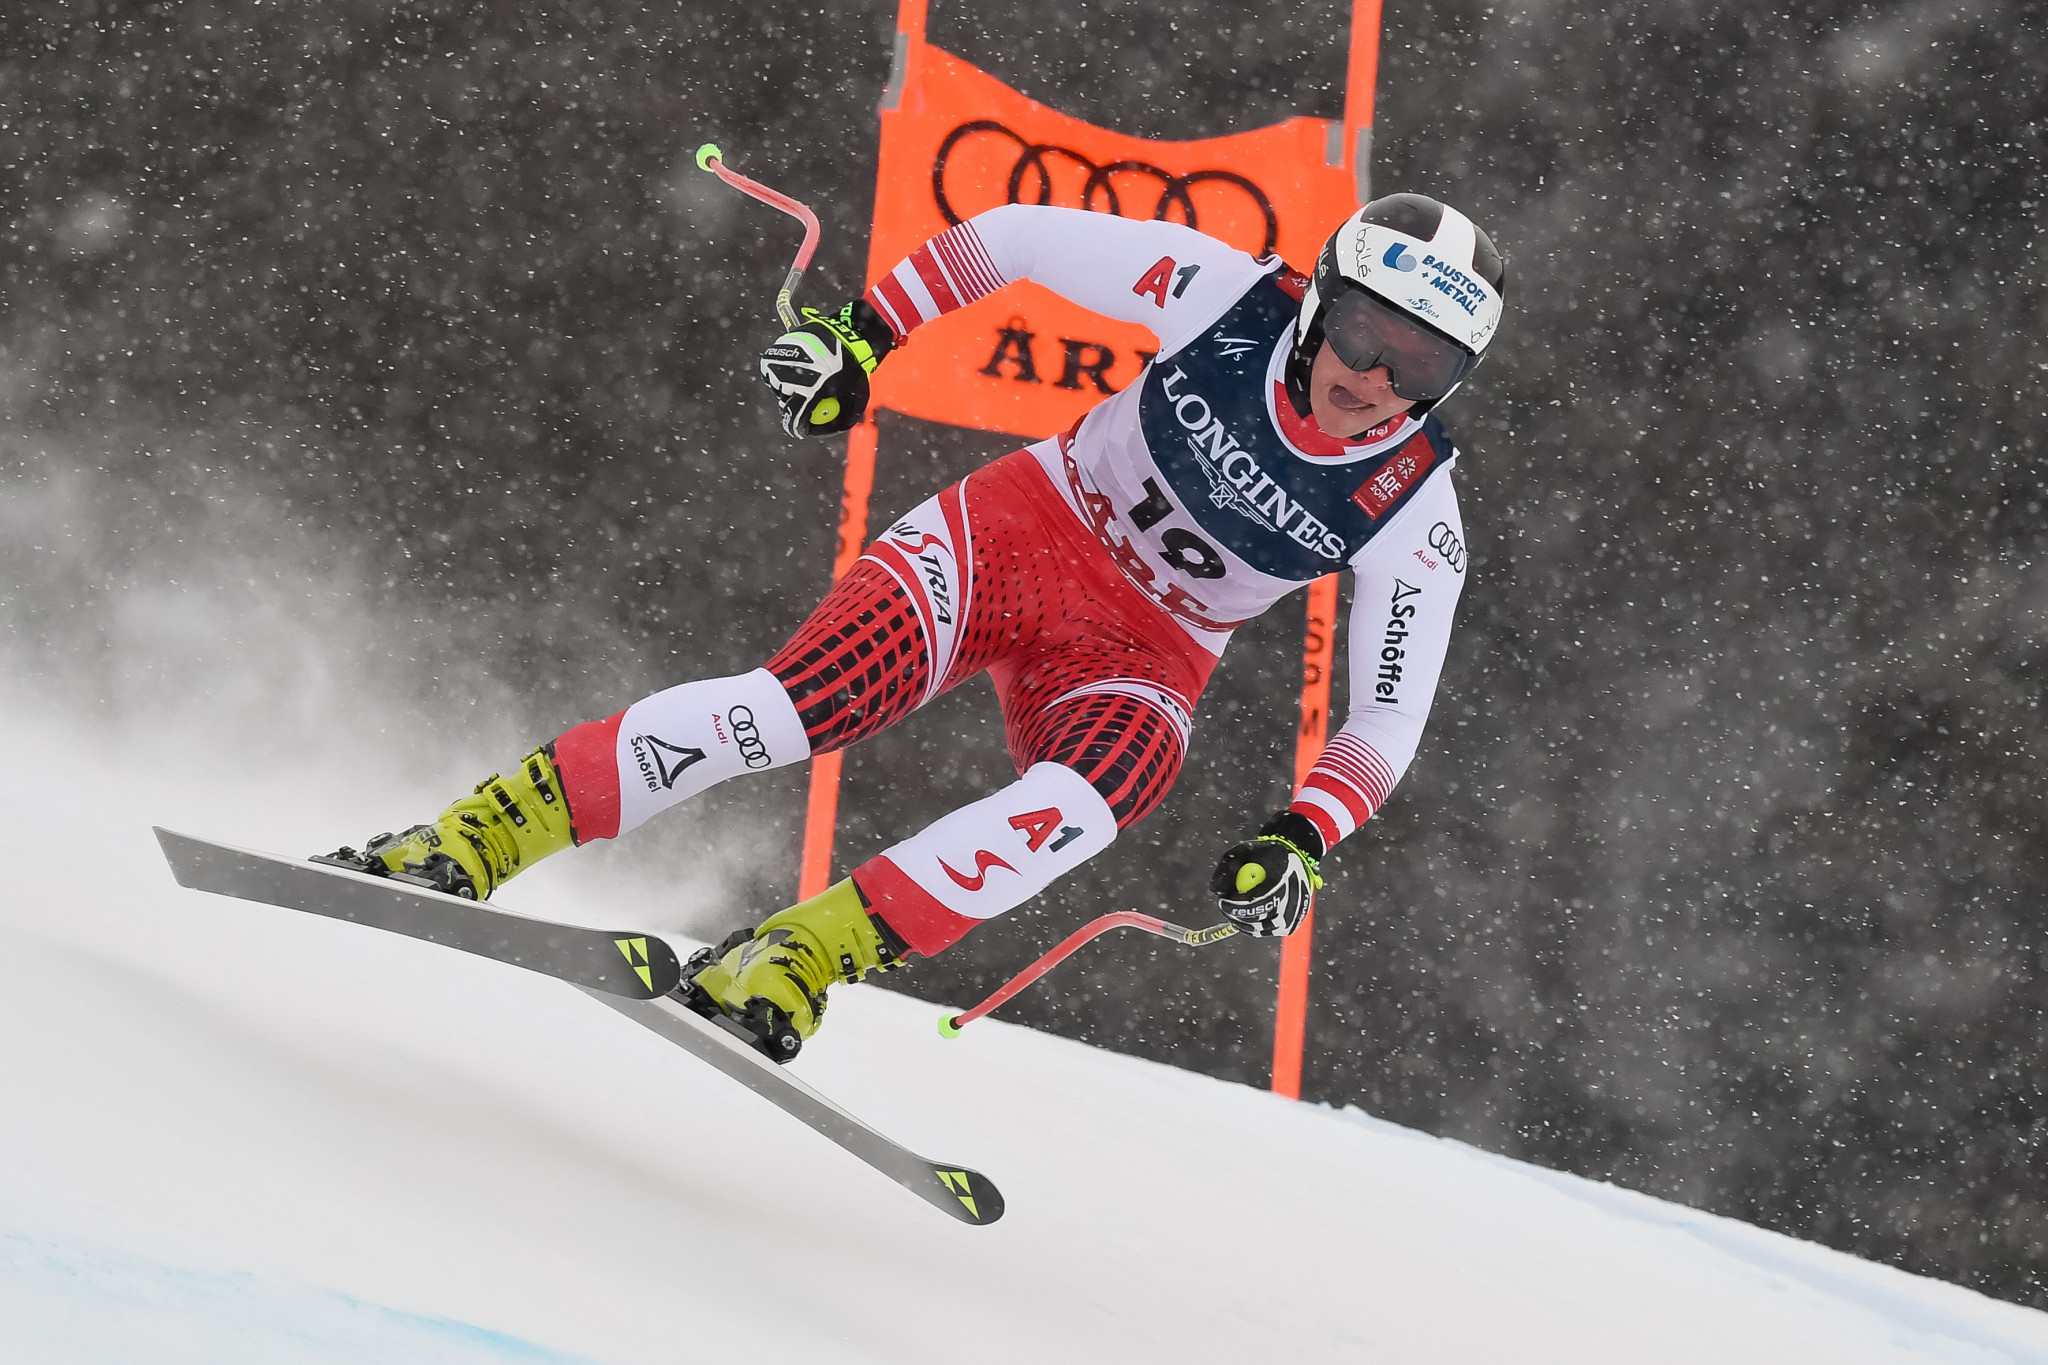 Austria's Ramona Siebenhofer achieved the fastest downhill time ©Getty Images